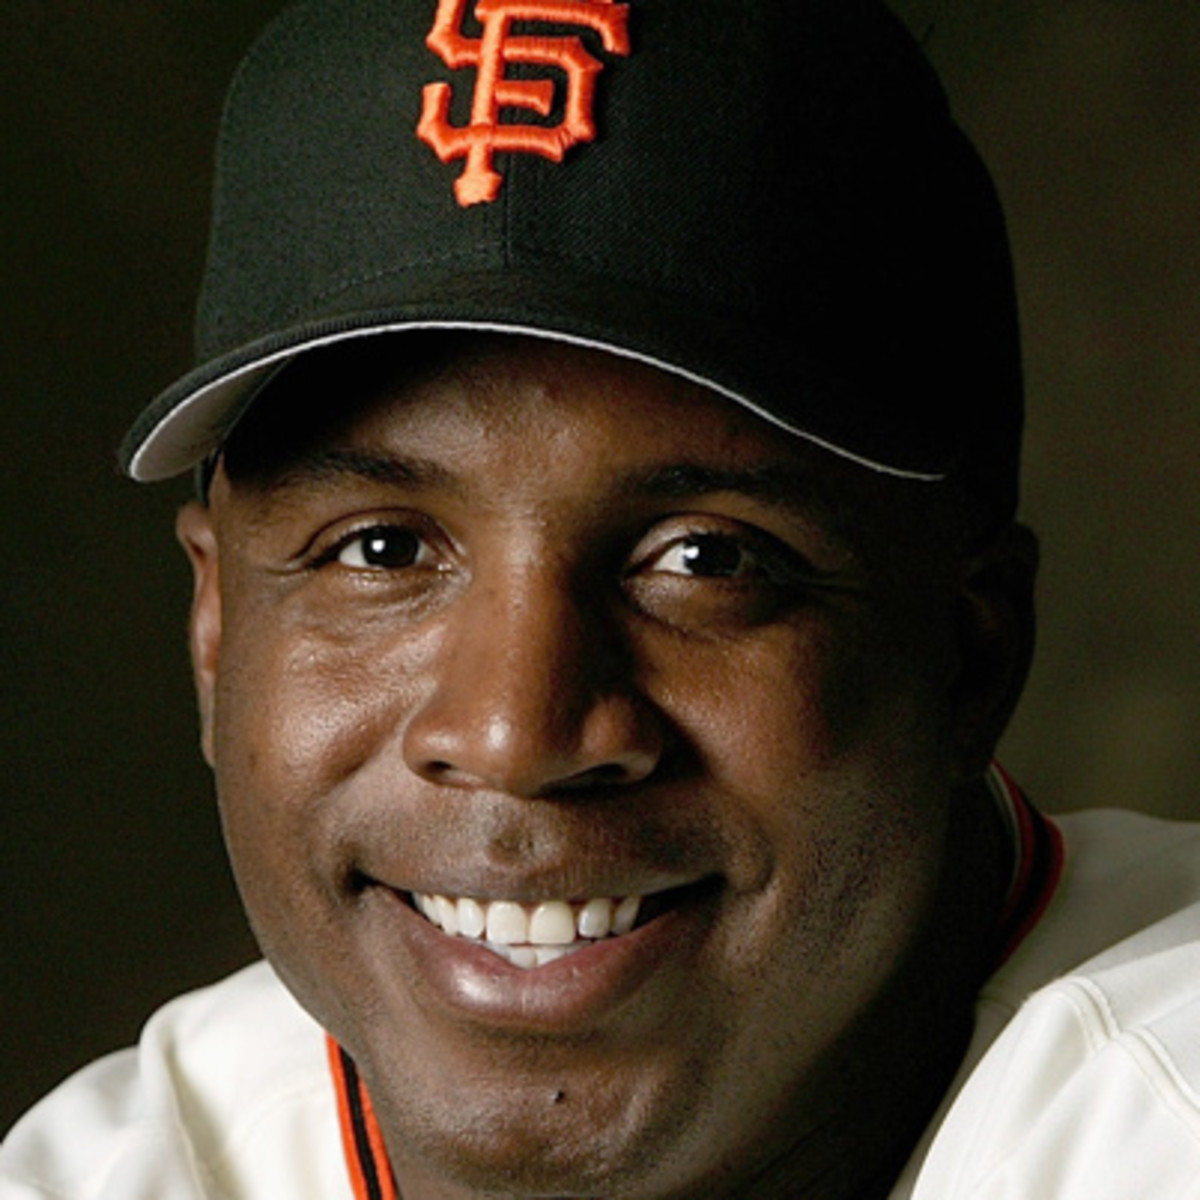 The 56-year old son of father (?) and mother(?) Barry Bonds in 2020 photo. Barry Bonds earned a 20 million dollar salary - leaving the net worth at  million in 2020